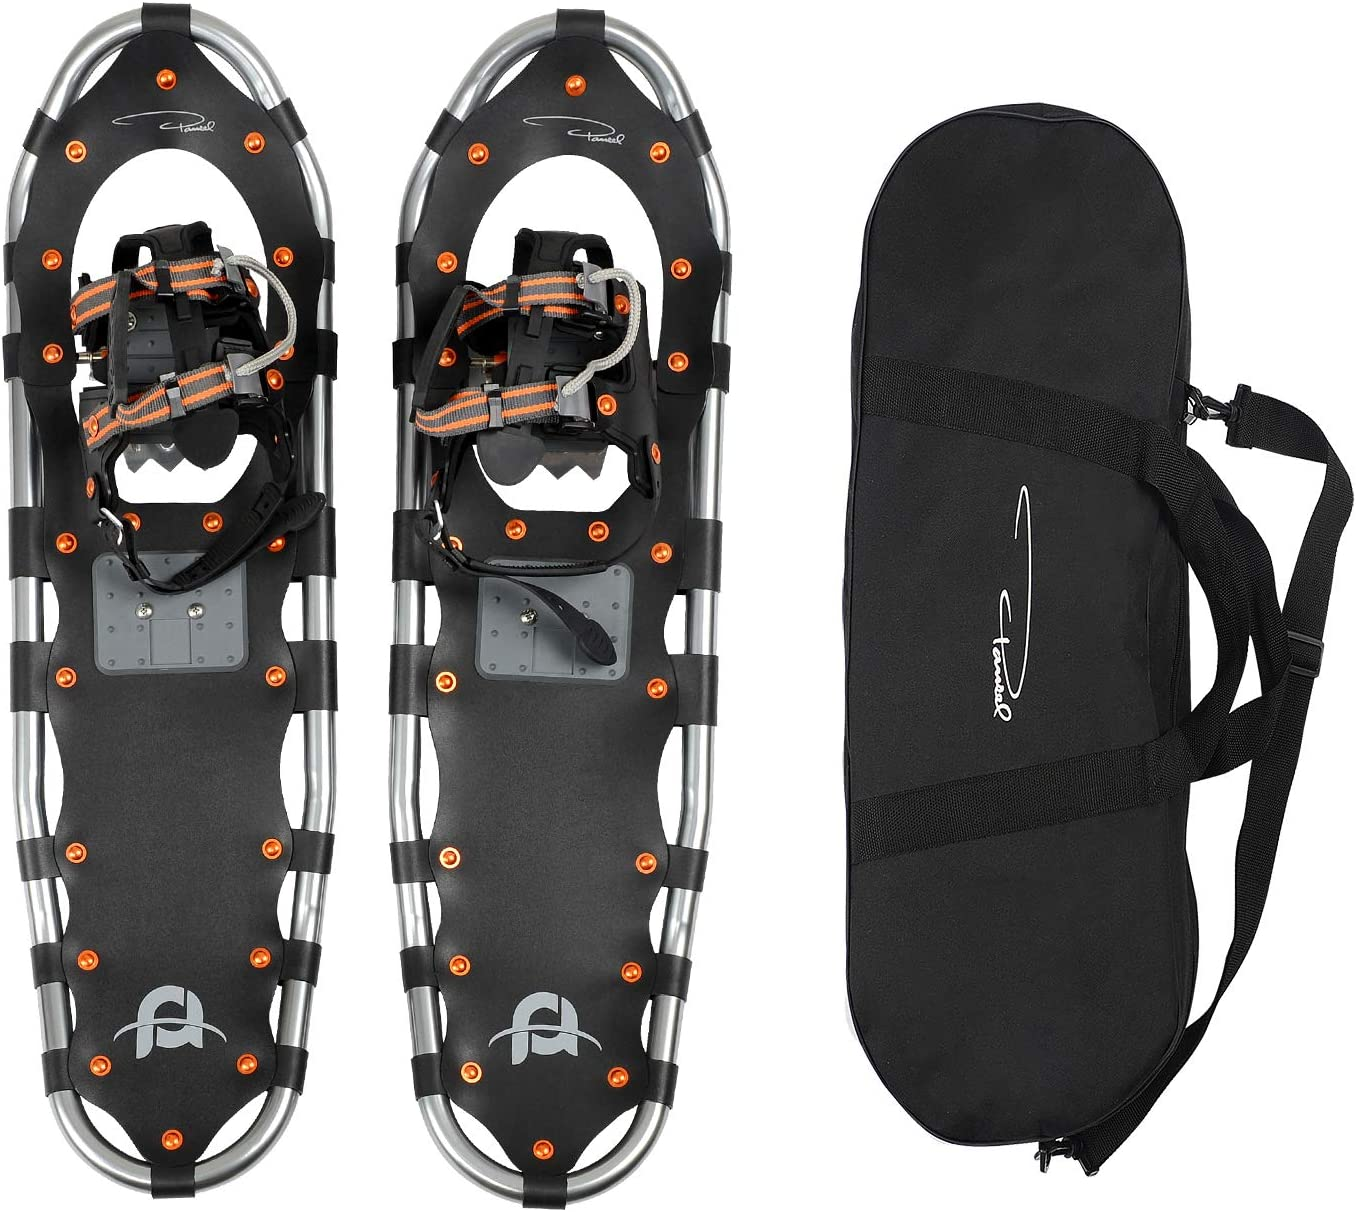 Pansel 22 25 30 35 Snowshoes for Men, Women and Youth, Lightweight Aluminum Alloy Snow Shoes with Adjustable Ratchet Bindings Carrying Tote Bag, 80 120 160 210 lbs. Capacity